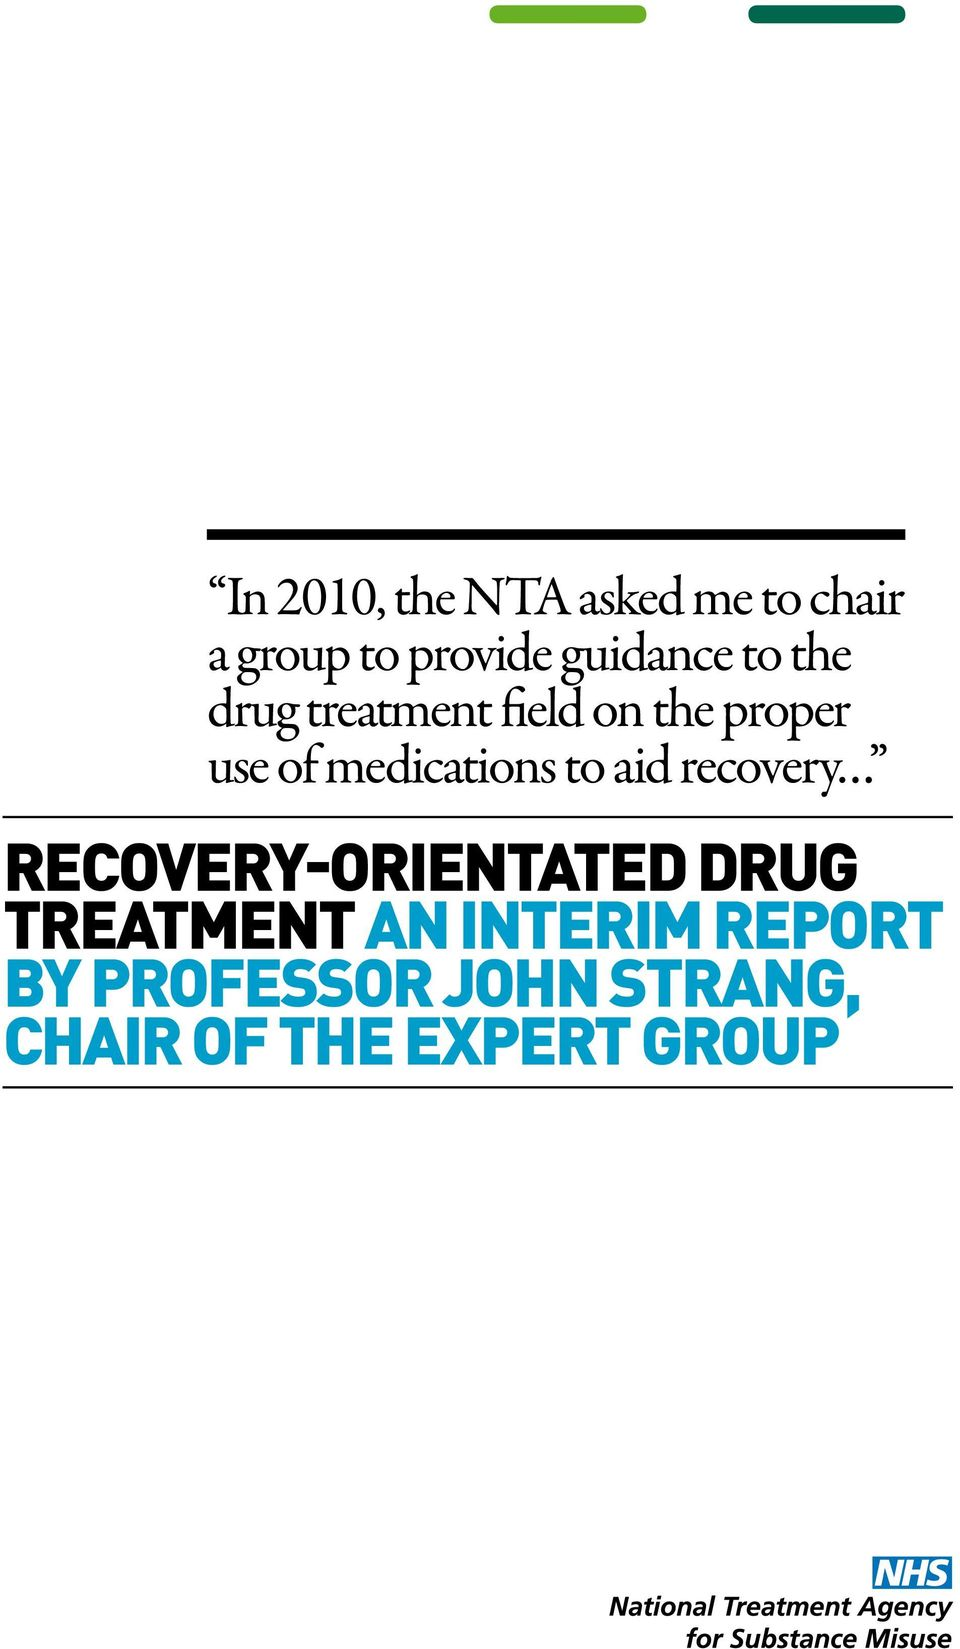 medications to aid recovery recovery-orientated drug